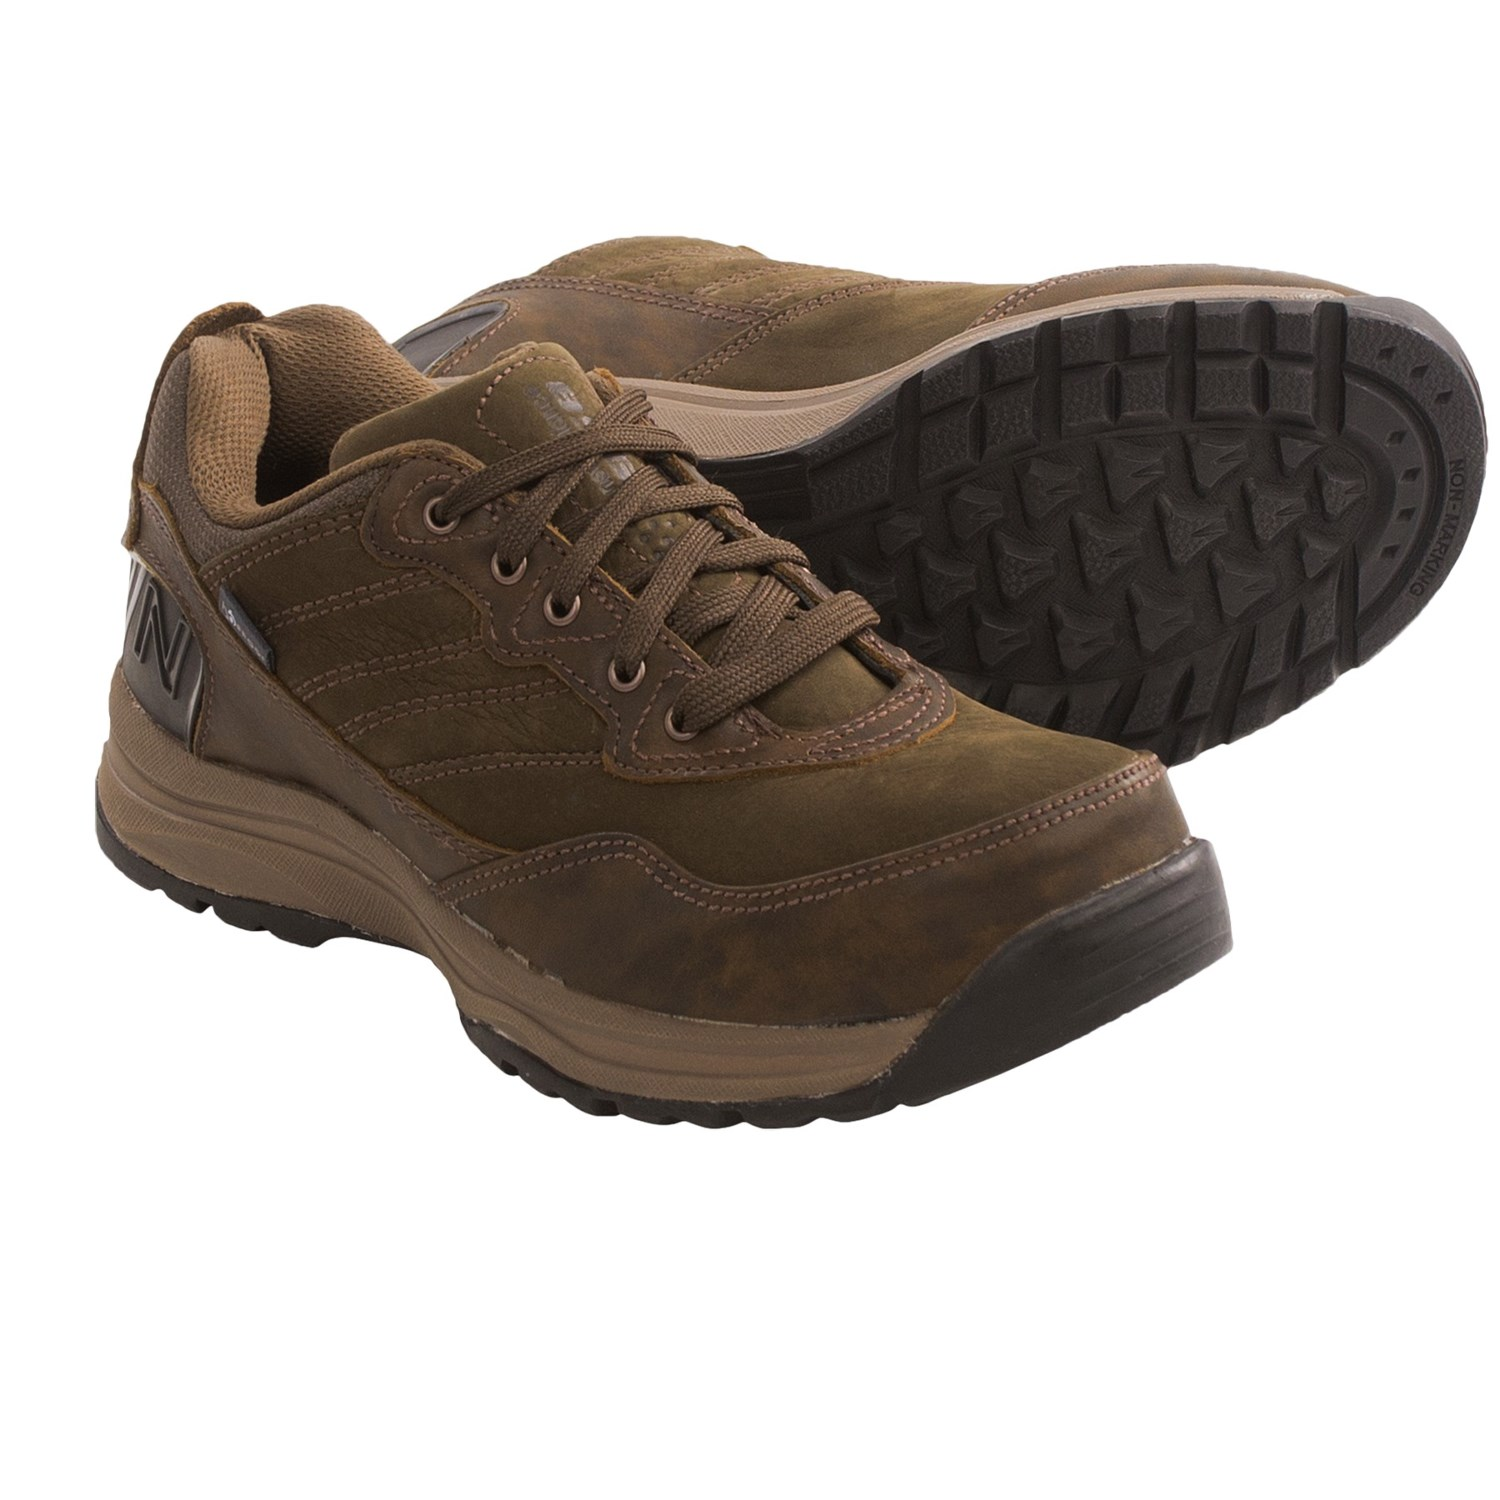 New Balance 968 Walking Shoes - Leather (For Women) in Brown